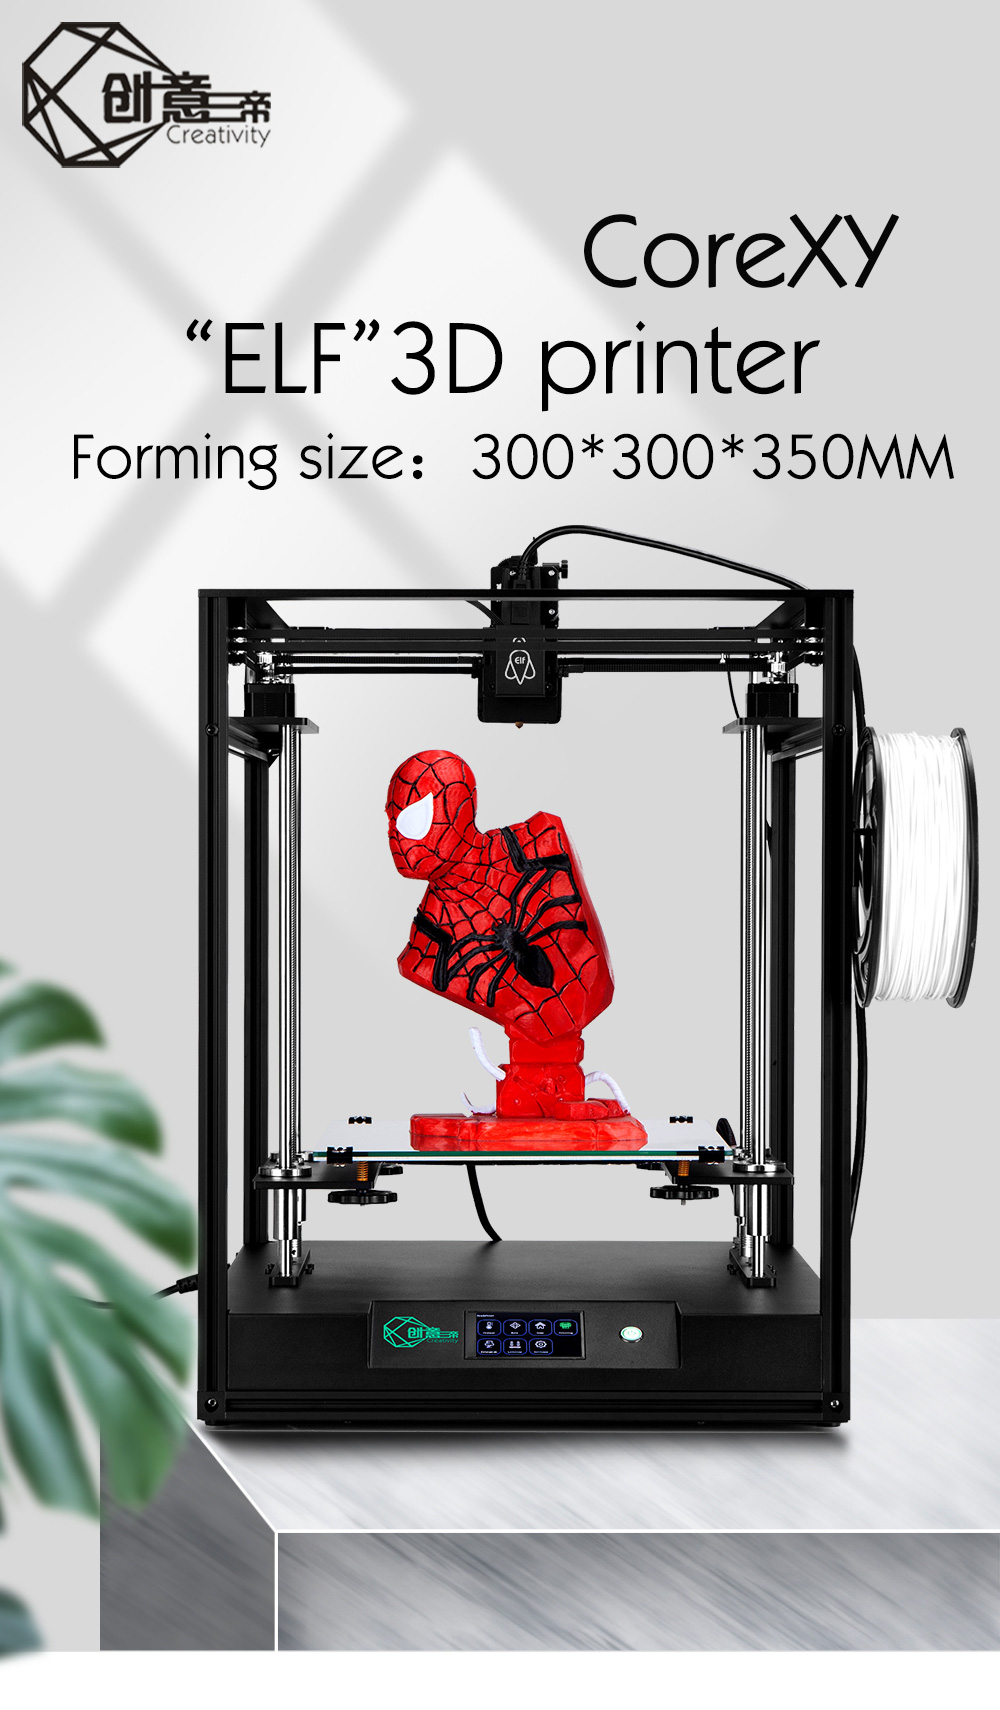 Short-Range Standard Creativity CoreXY Structure Elf 3D Printer high Precision Dual Z axis Automatic Return Support BLTOUCH Large Area